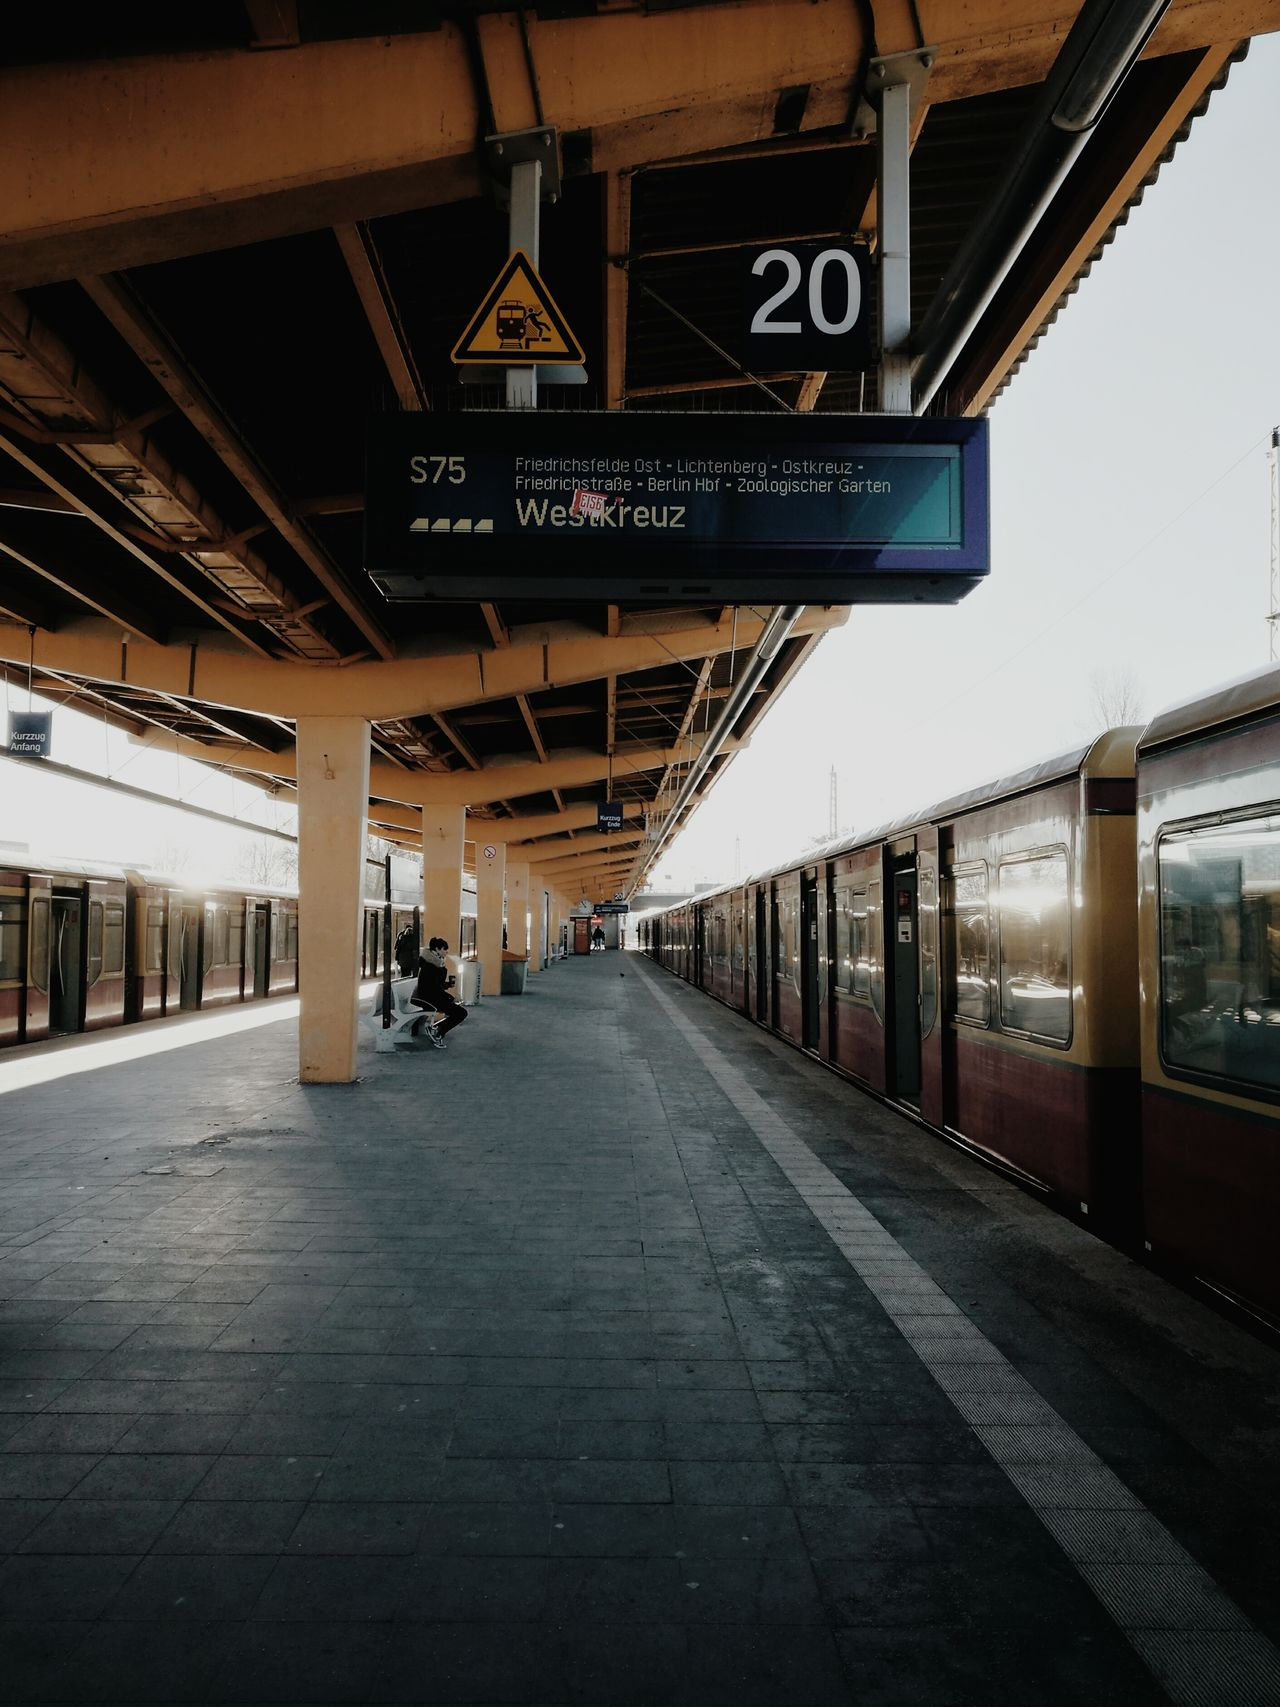 Transportation Rail Transportation Travel Railroad Station Platform Railroad Station Travel Destinations Marzahn Streetphotography Huaweiphotography Urban Lifestyle Huawei P9 Leica Cold Temperature Women Real People Streetphoto_color Streetscene Waiting S-bahn S-Bahn Berlin The City Light